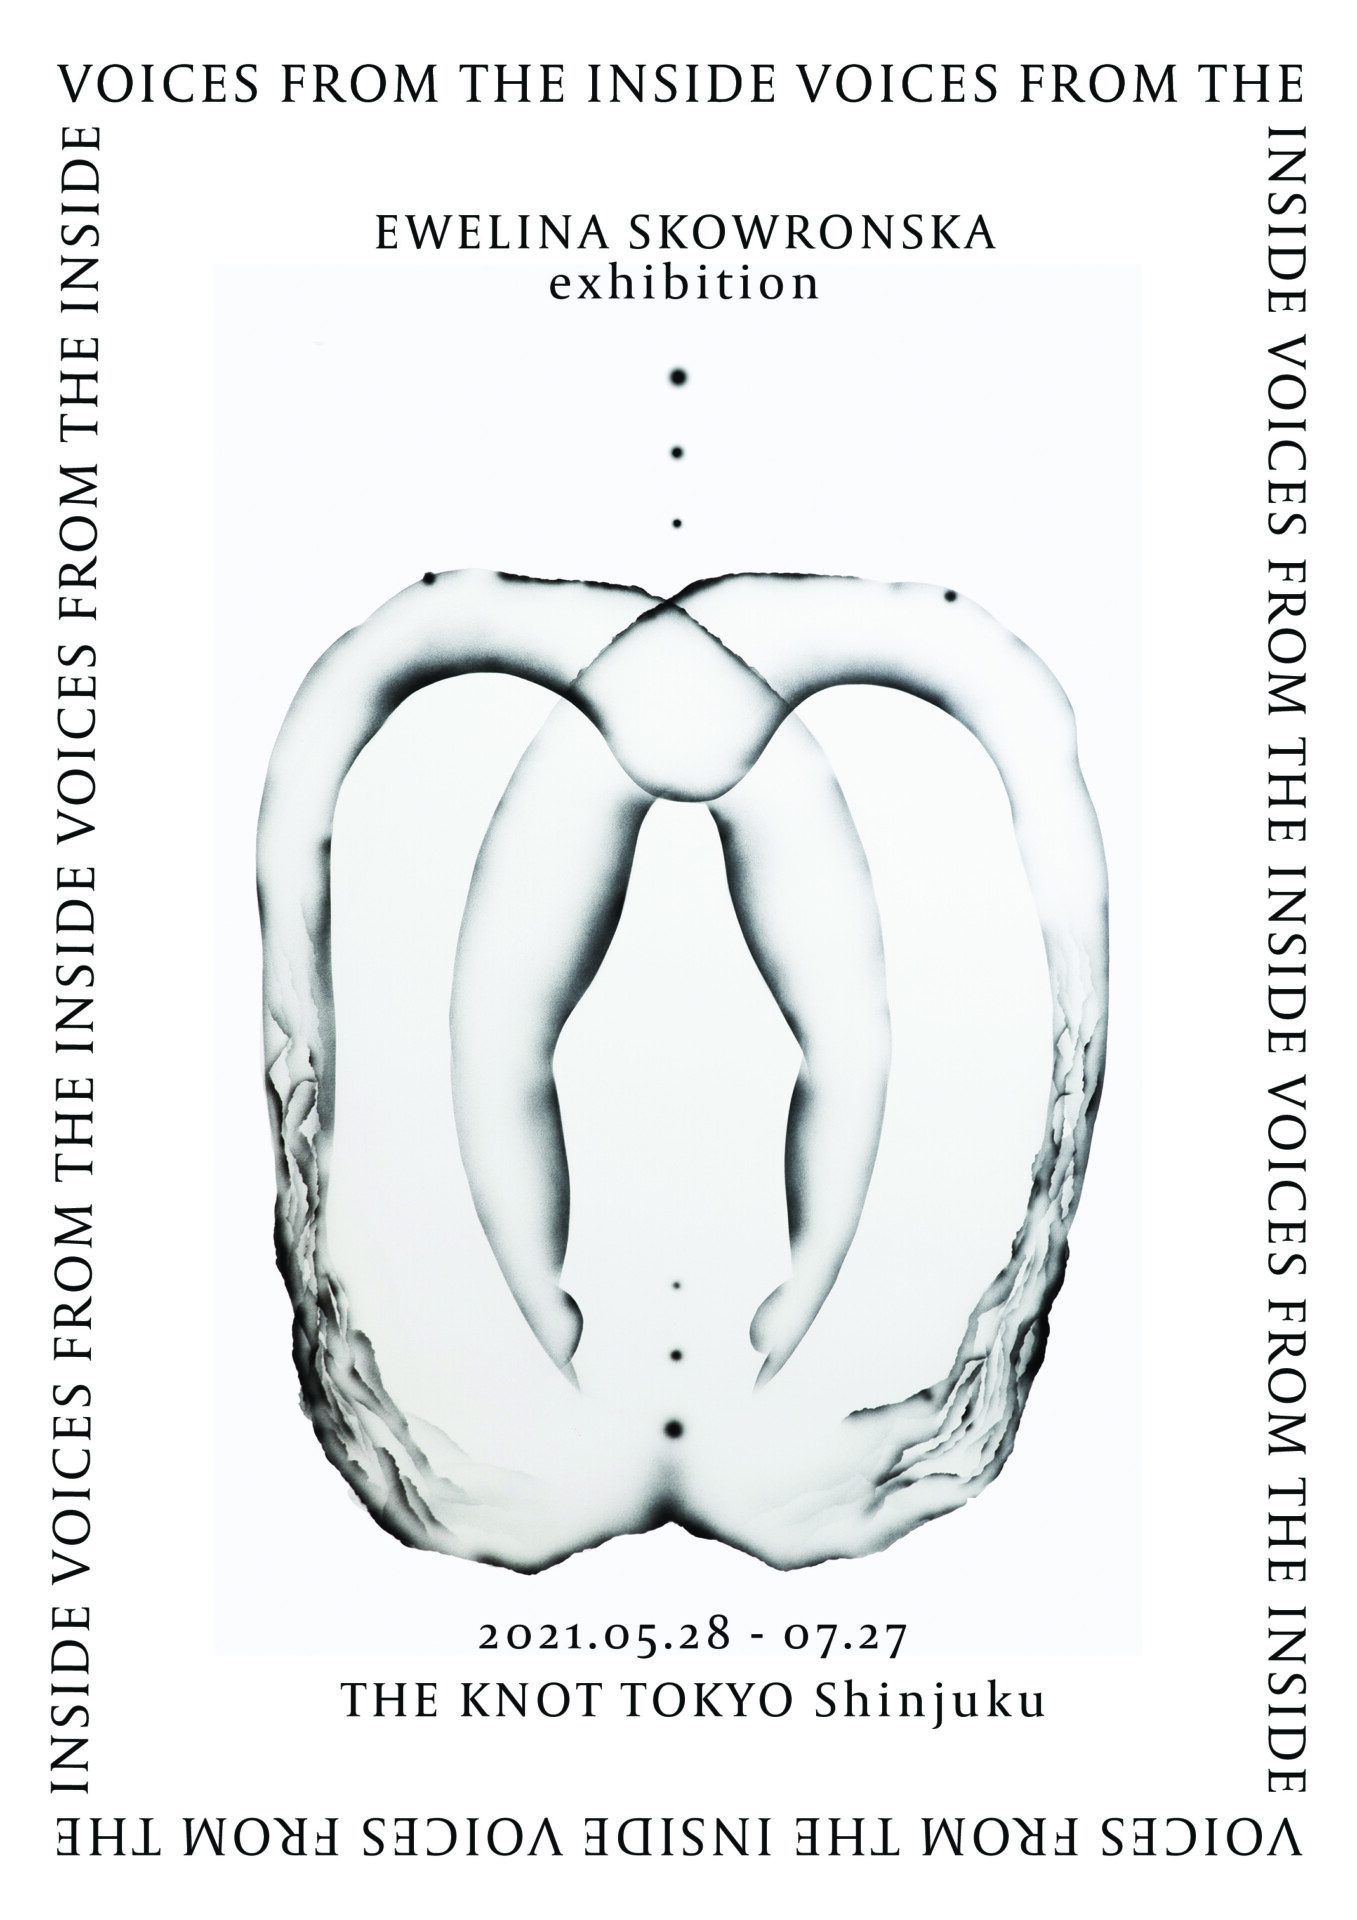 Ewelina Skowronska exhibition『Voices from the inside』